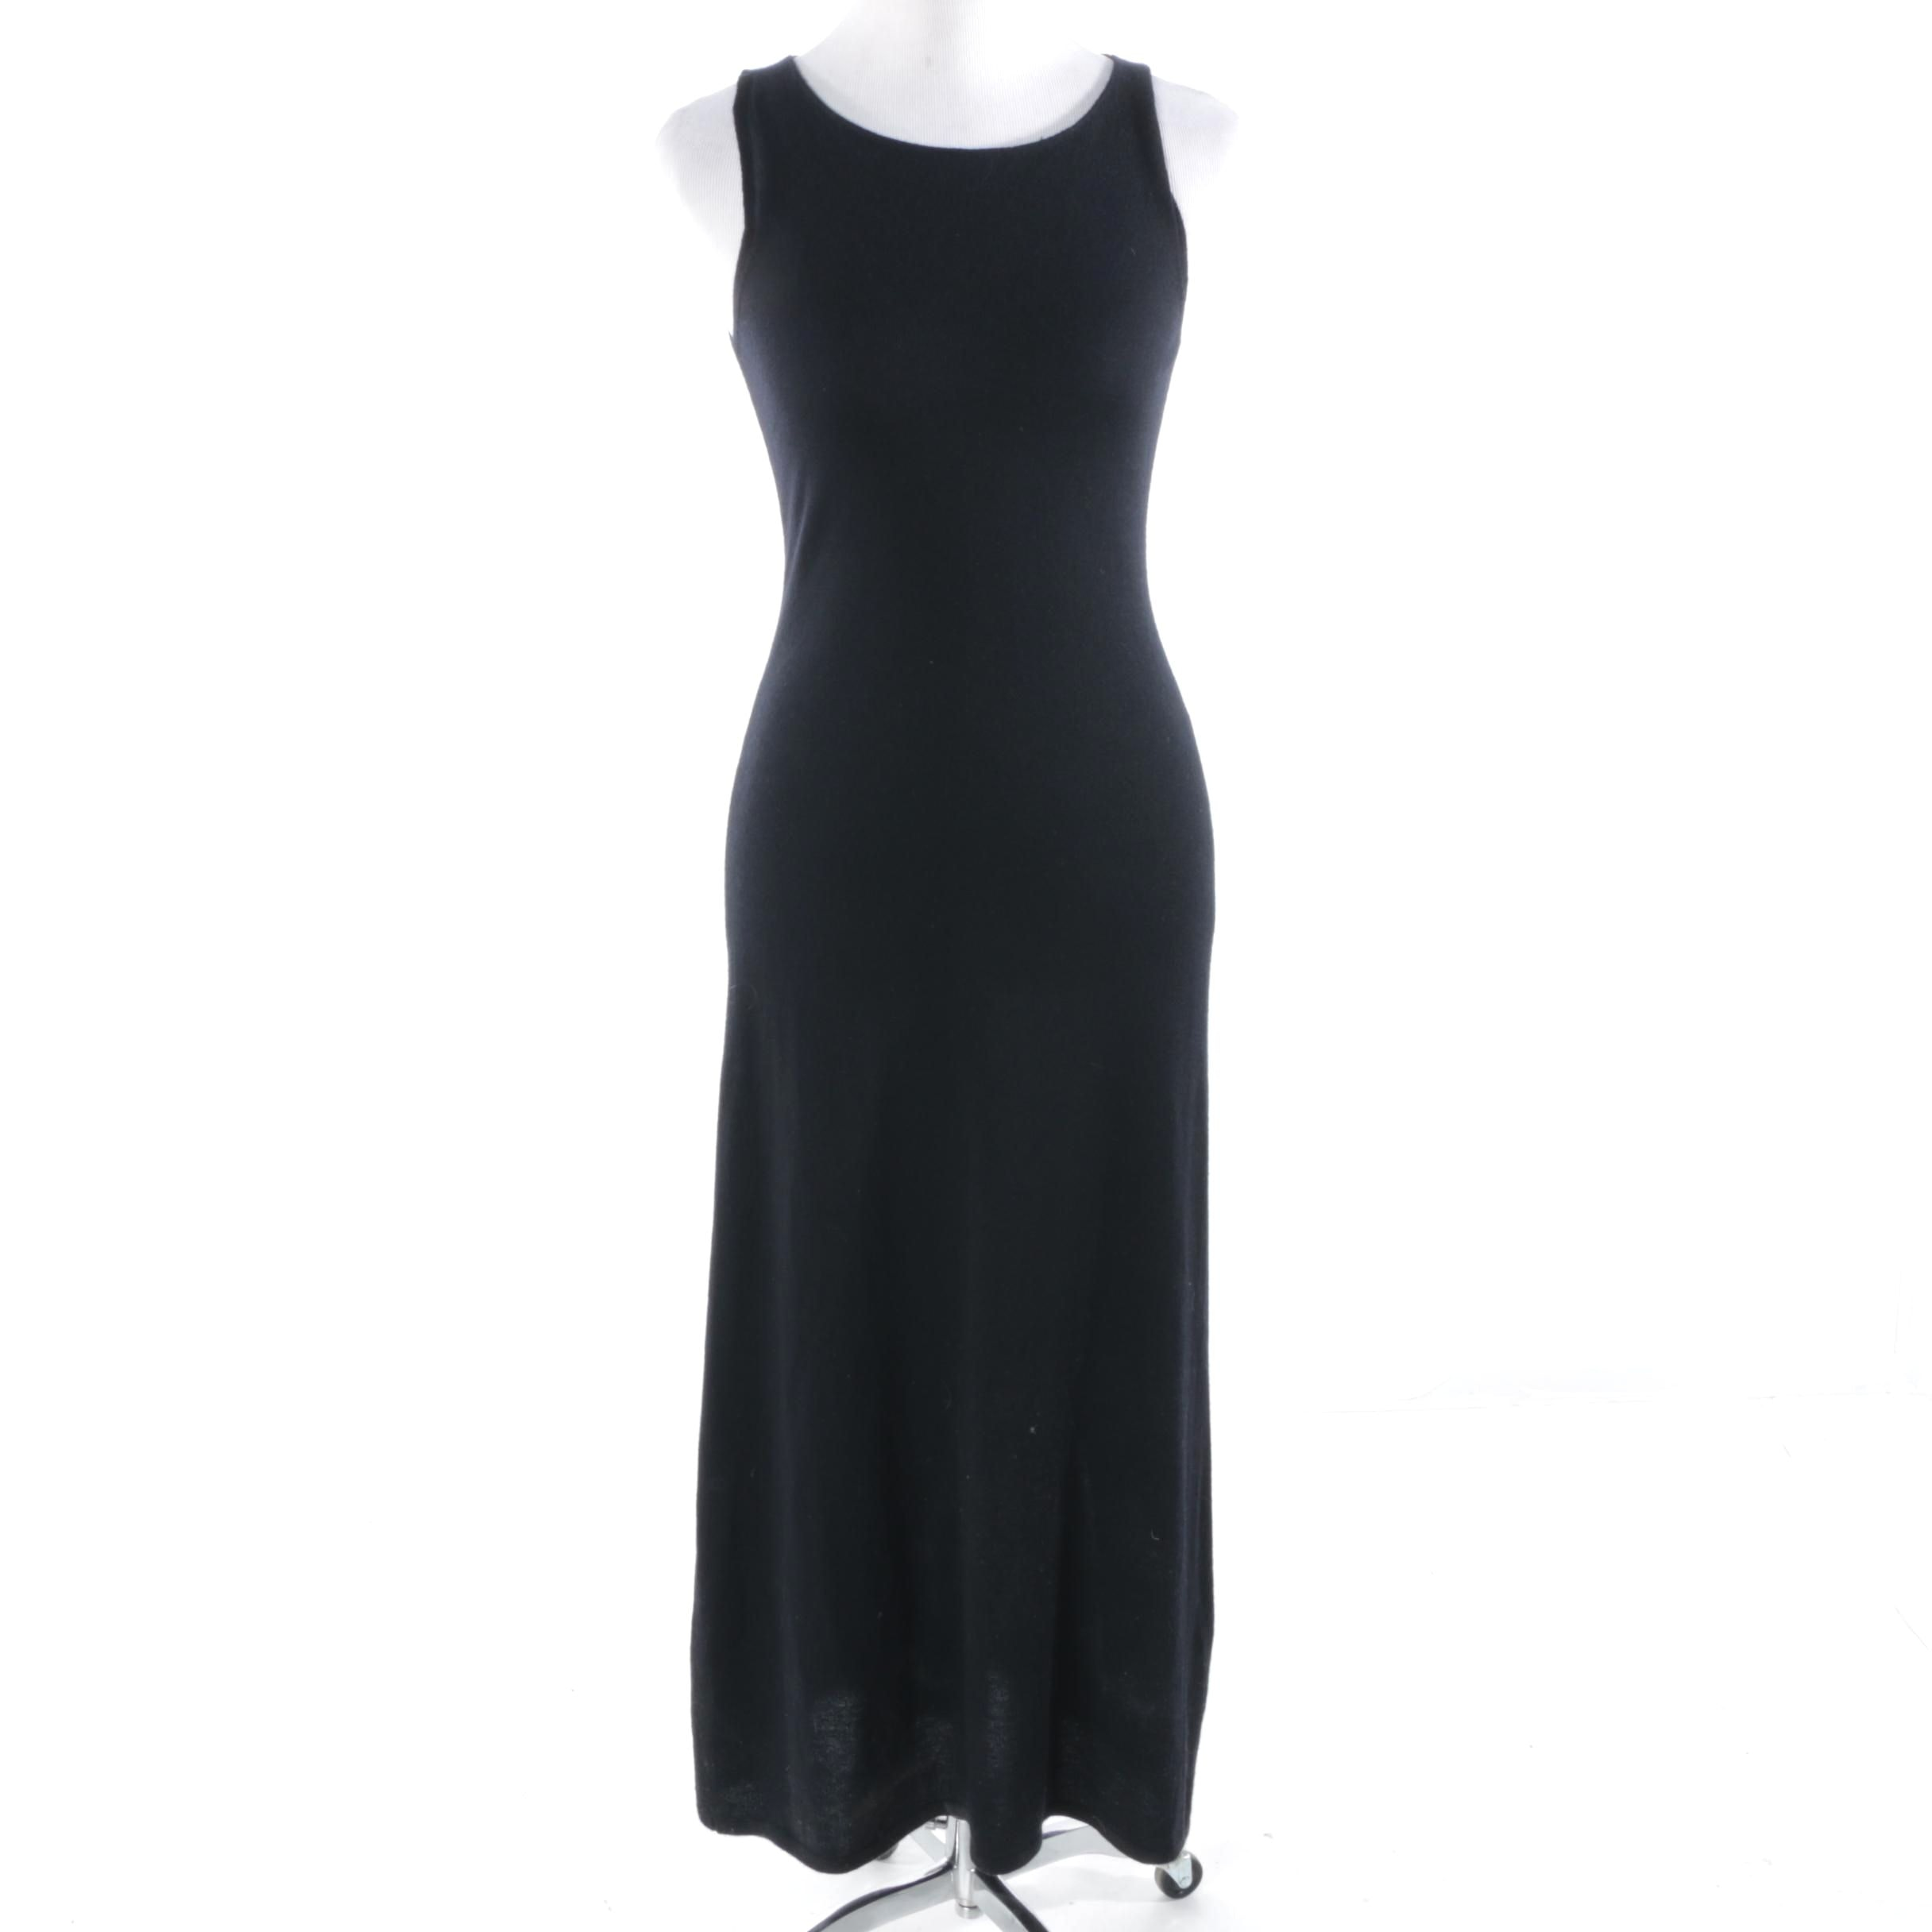 Yohji Yamamoto Black Cashmere Knit Sleeveless Dress, Made in Italy